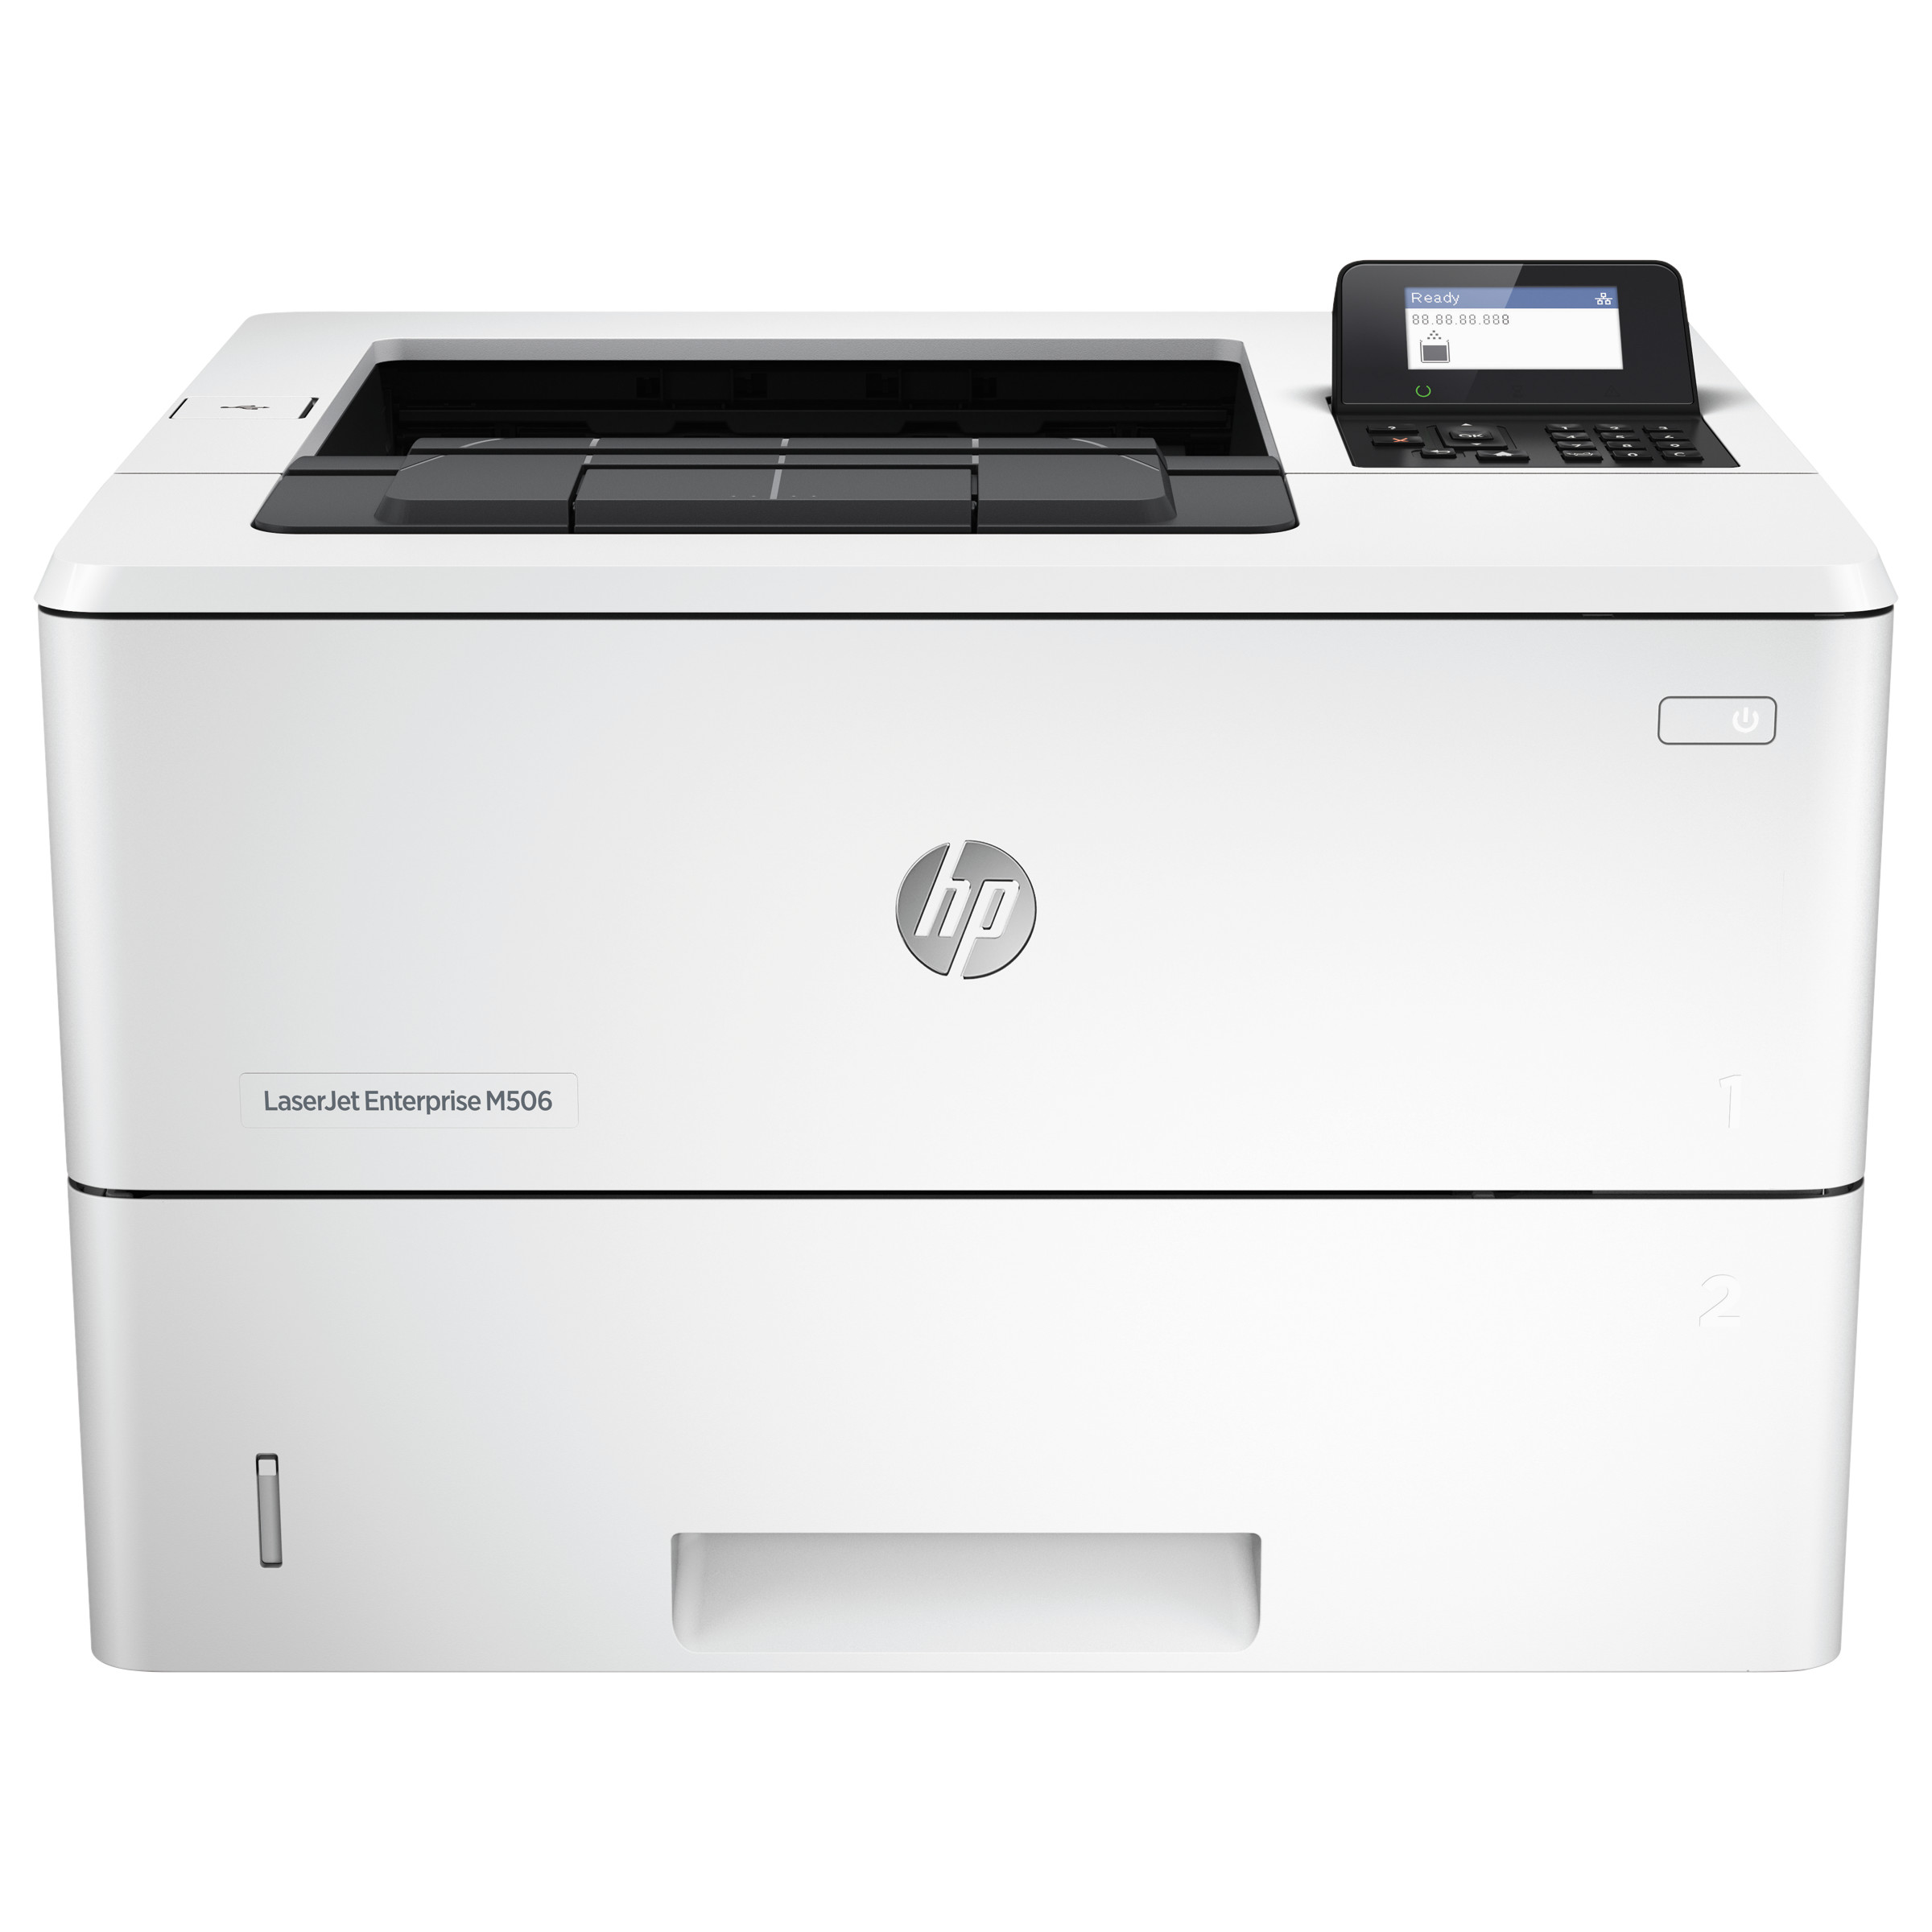 HP LaserJet Enterprise M506n Laser Printer by HP